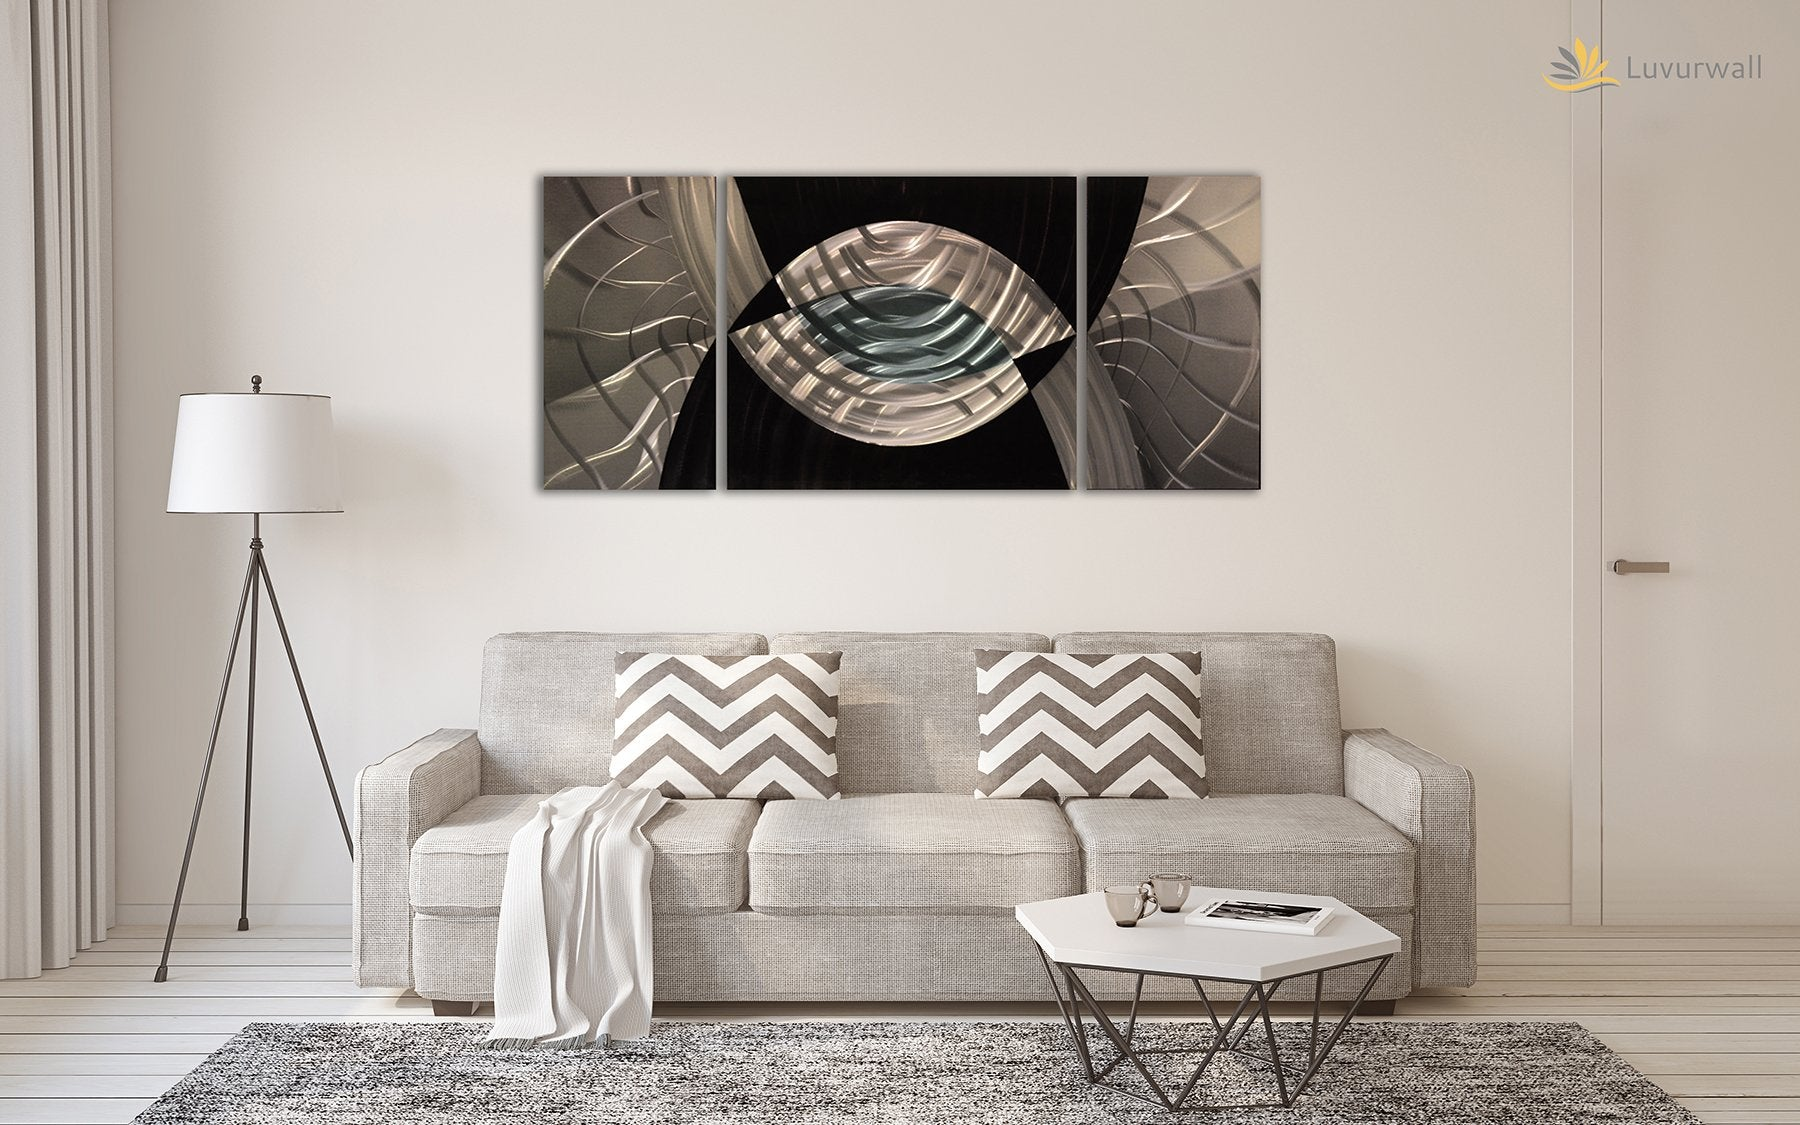 Luvurwall 3 Panel Monochrome Abstract Metal Wall Art, Metal Wall Art - Luvurwall